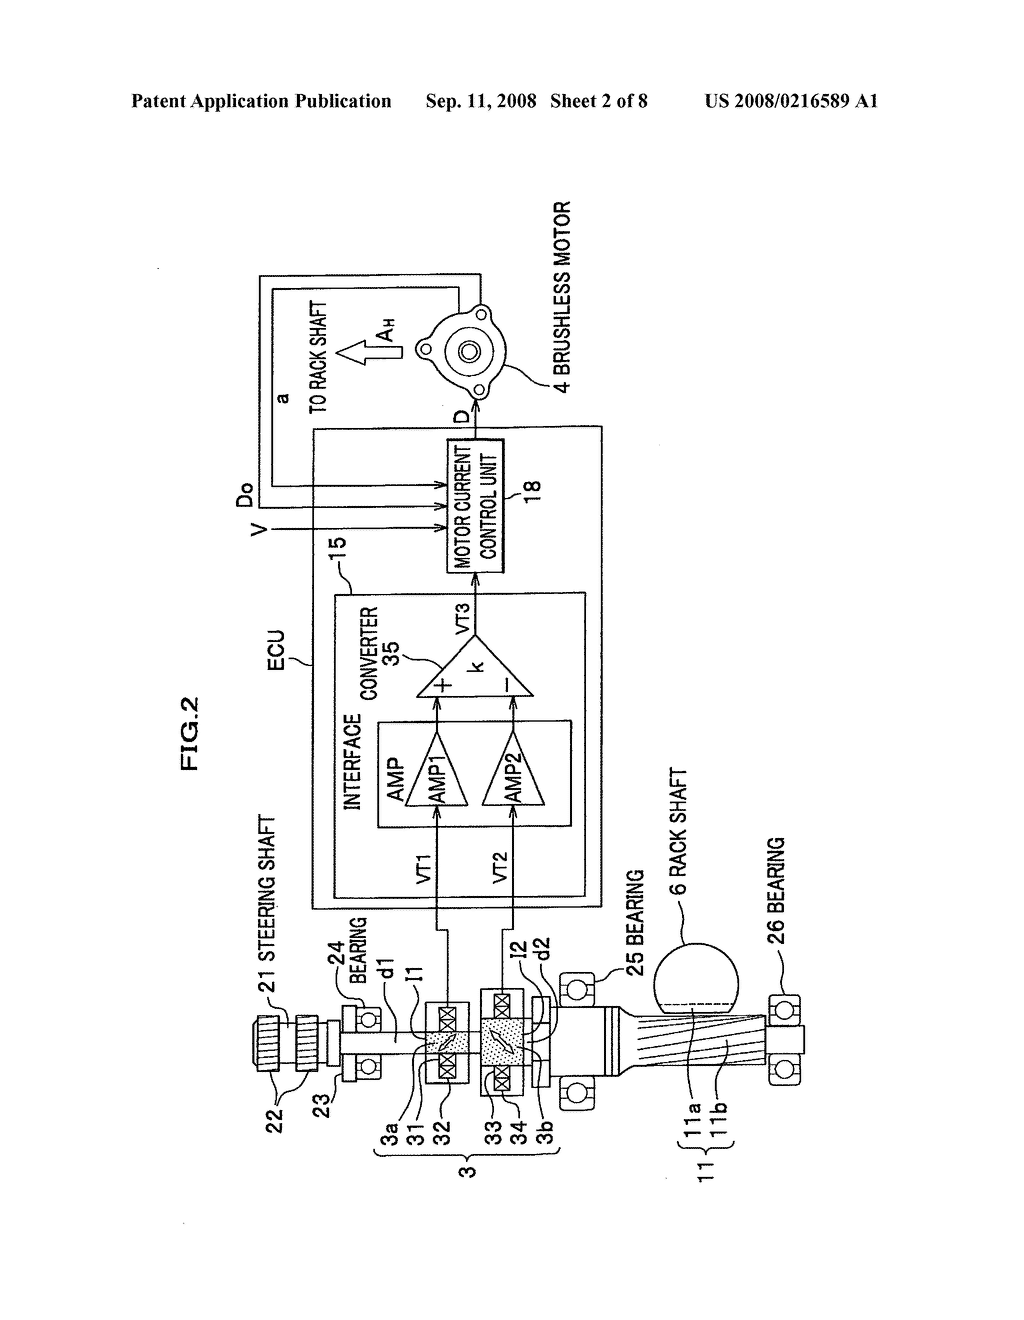 hight resolution of power steering schematic wiring diagrampower steering schematic diagram wiring diagram centremagnetostrictive torque sensor and electric power